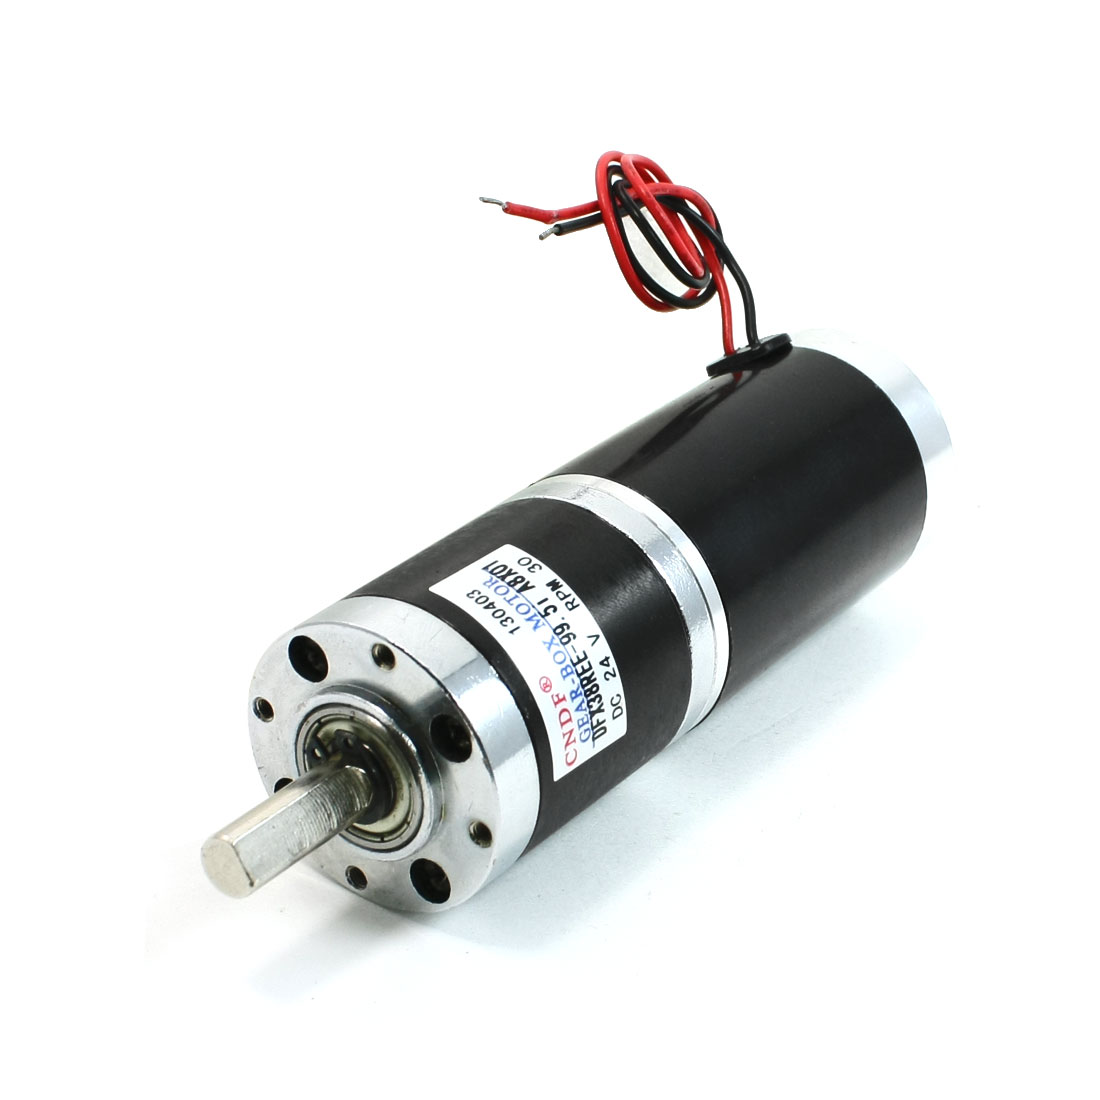 30RPM Rotary Speed DC 24V High Torque 8mm Dia Shaft Magnetic Geared Motor